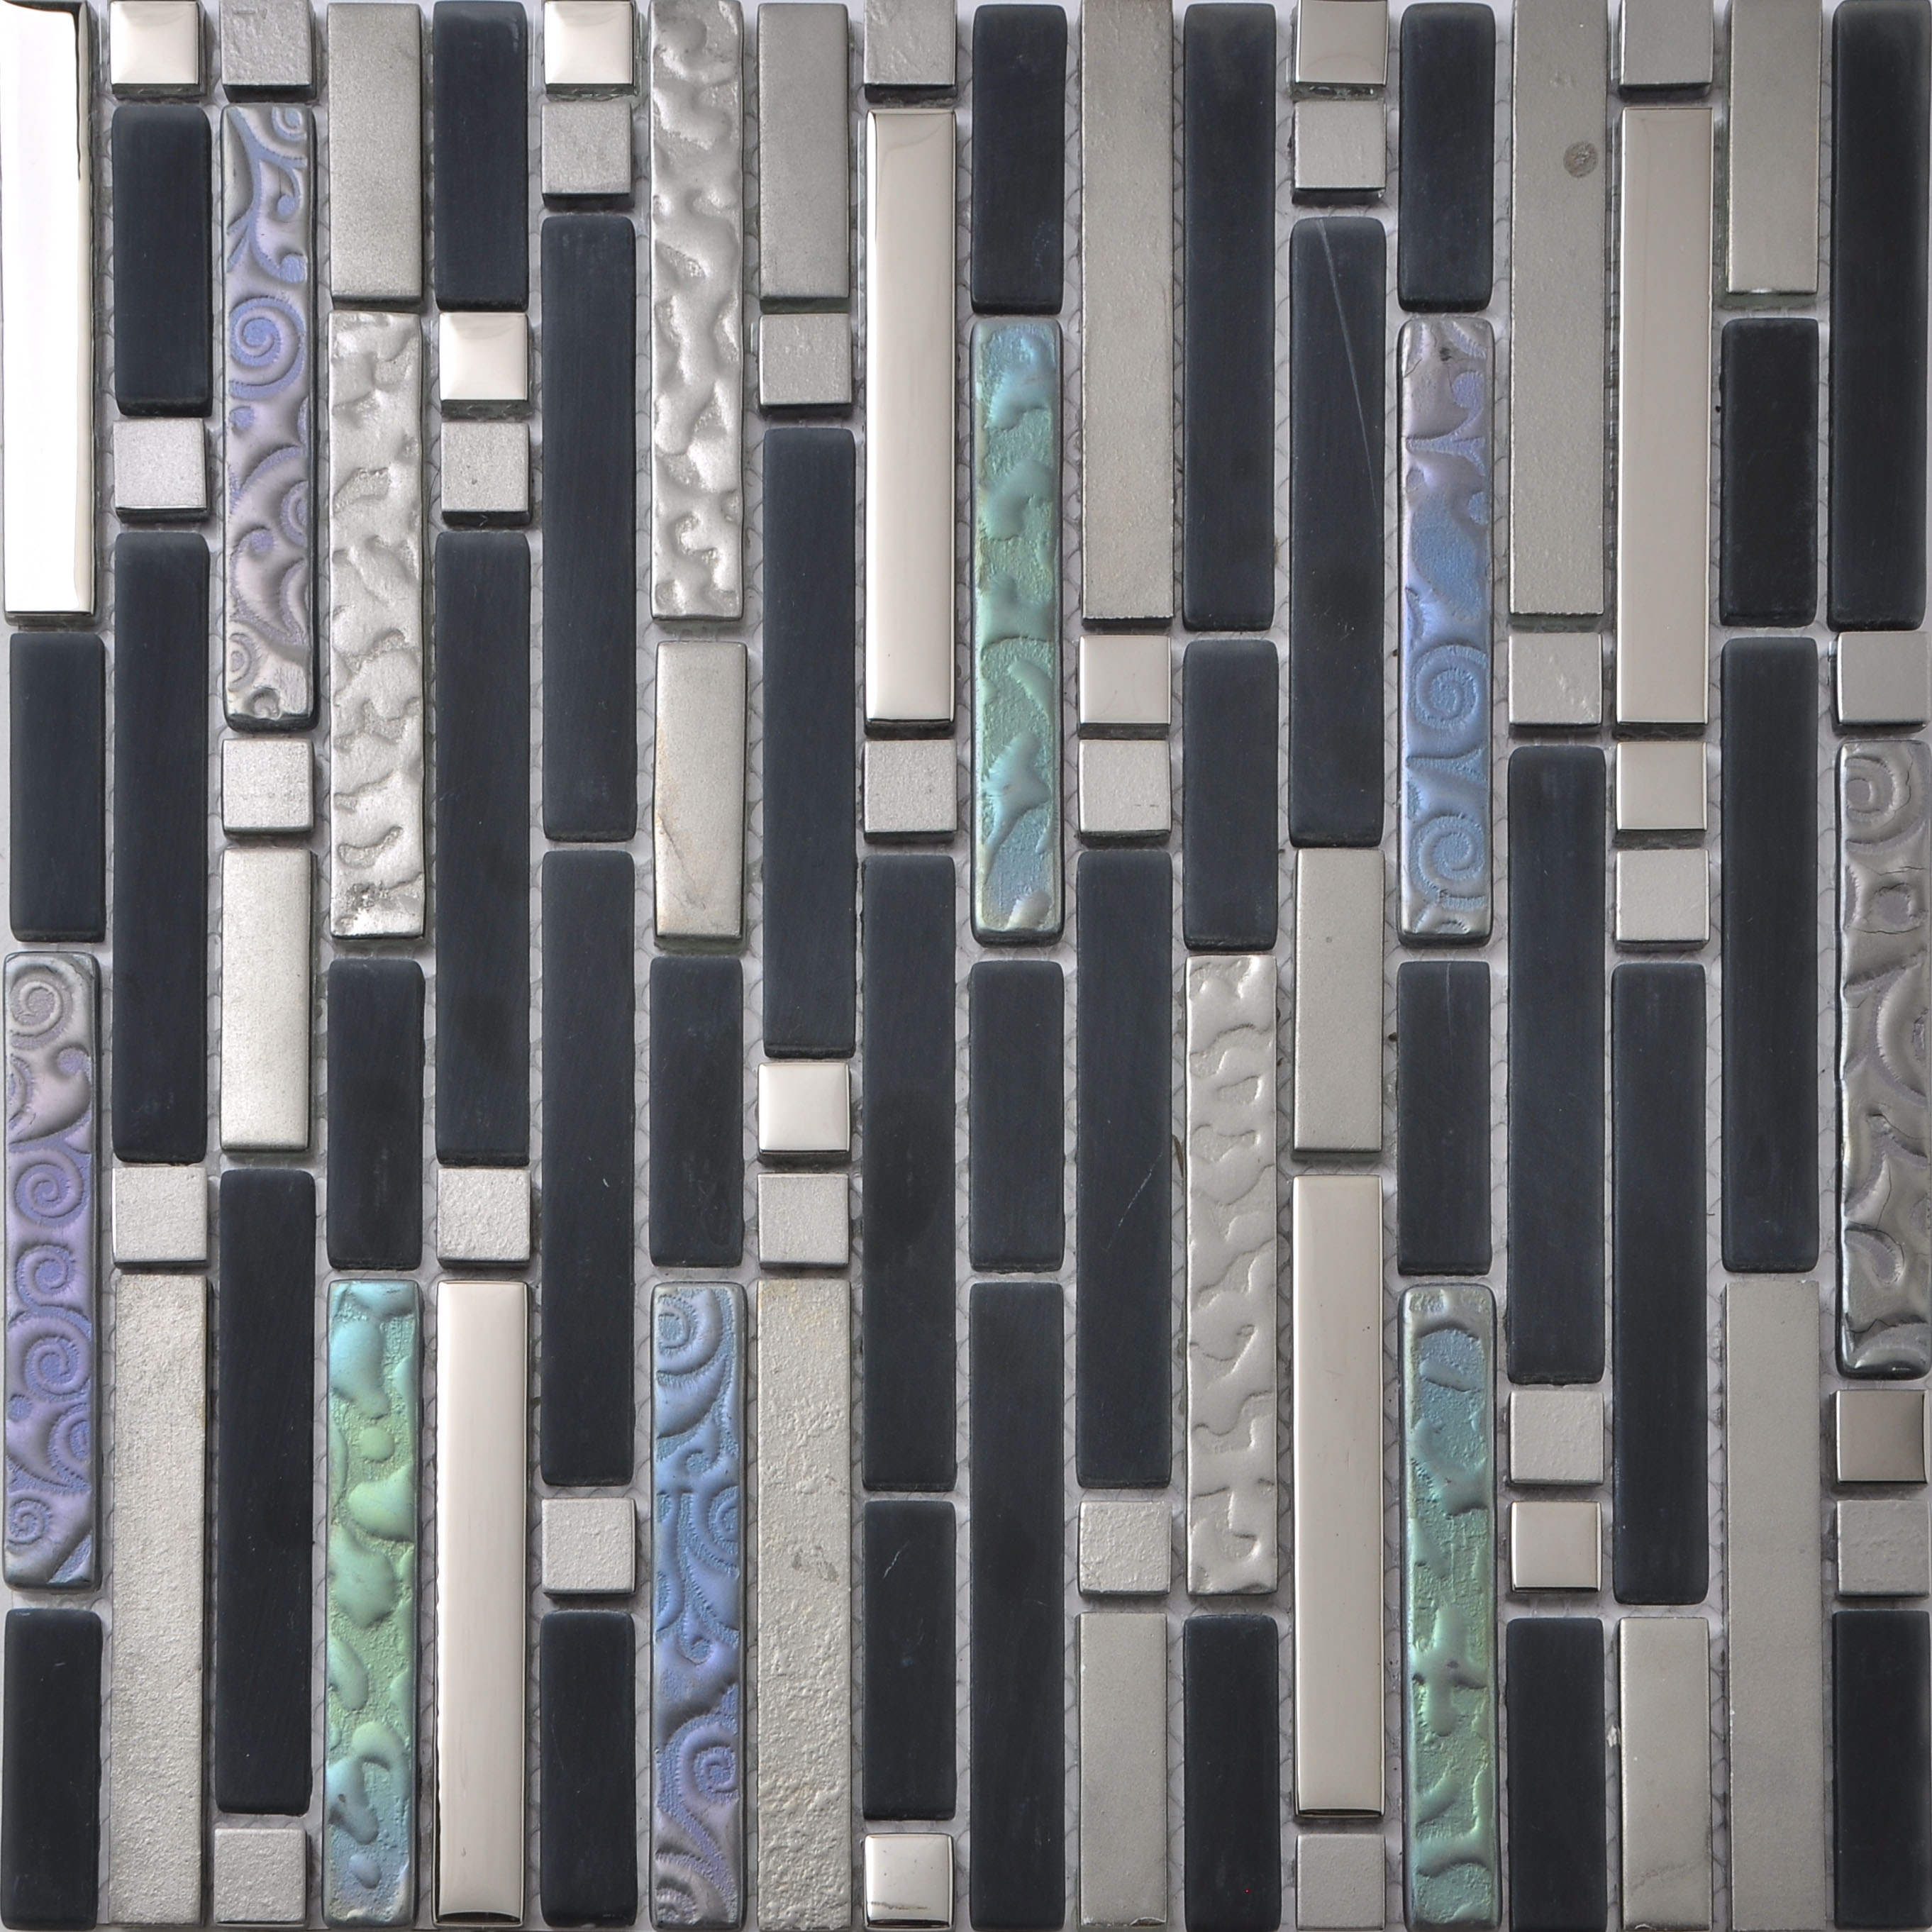 Stainless Steel Mosaic Tiles Mix Glass 3D Metal Mosaic Tile